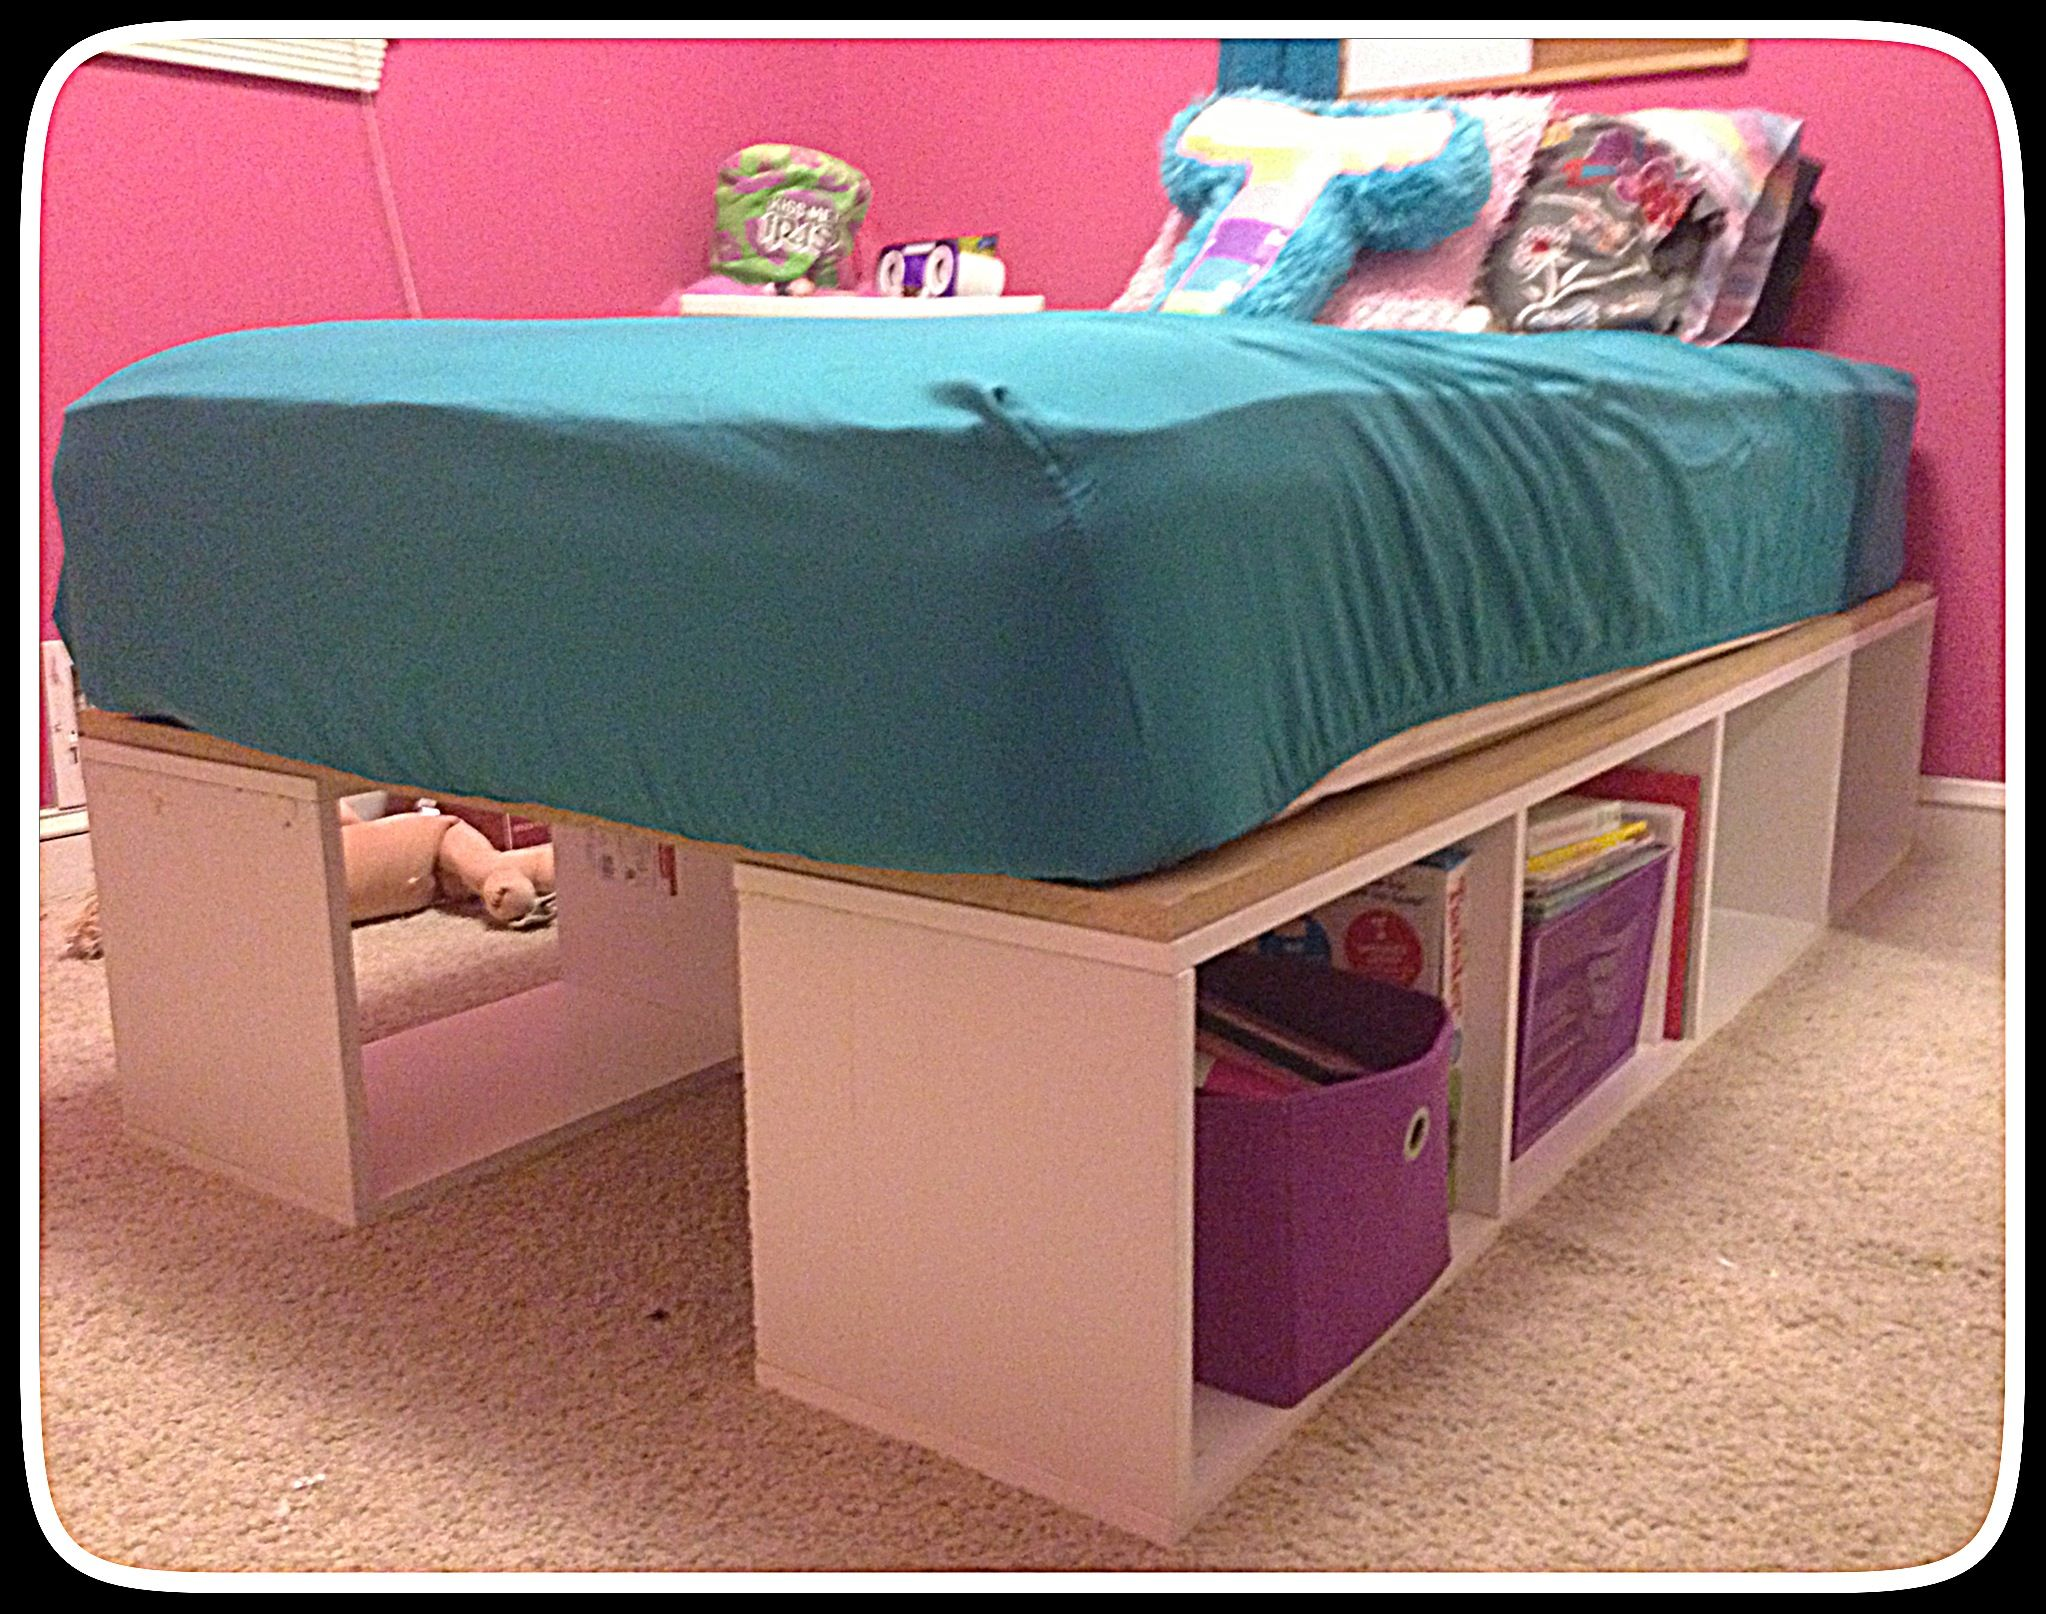 Hand made storage bed frame!!!! Love it! Bed storage